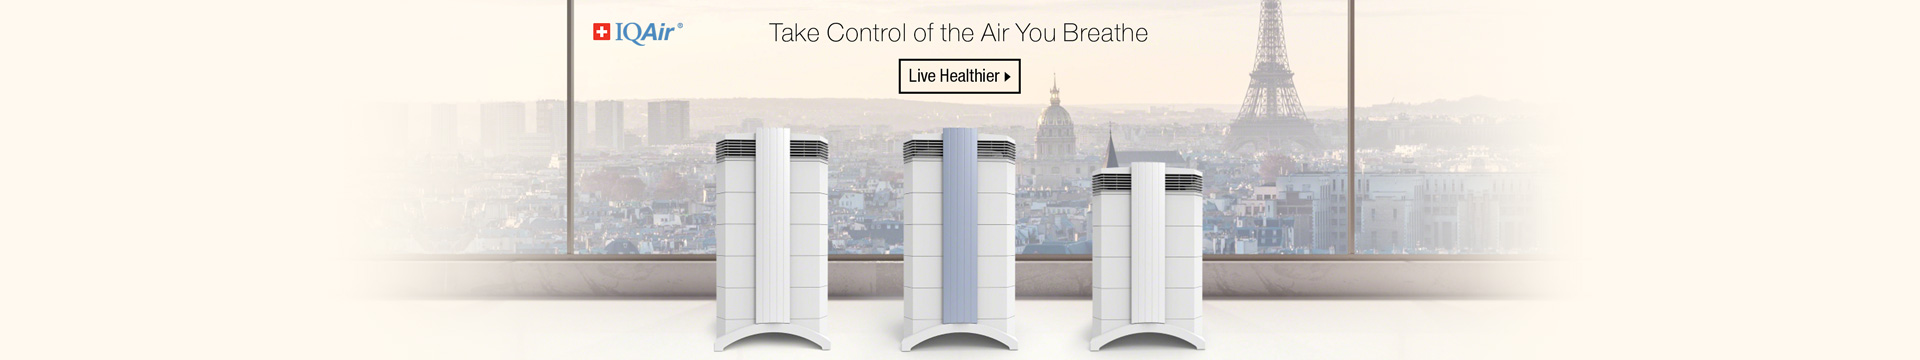 Take Control of the Air You Breathe